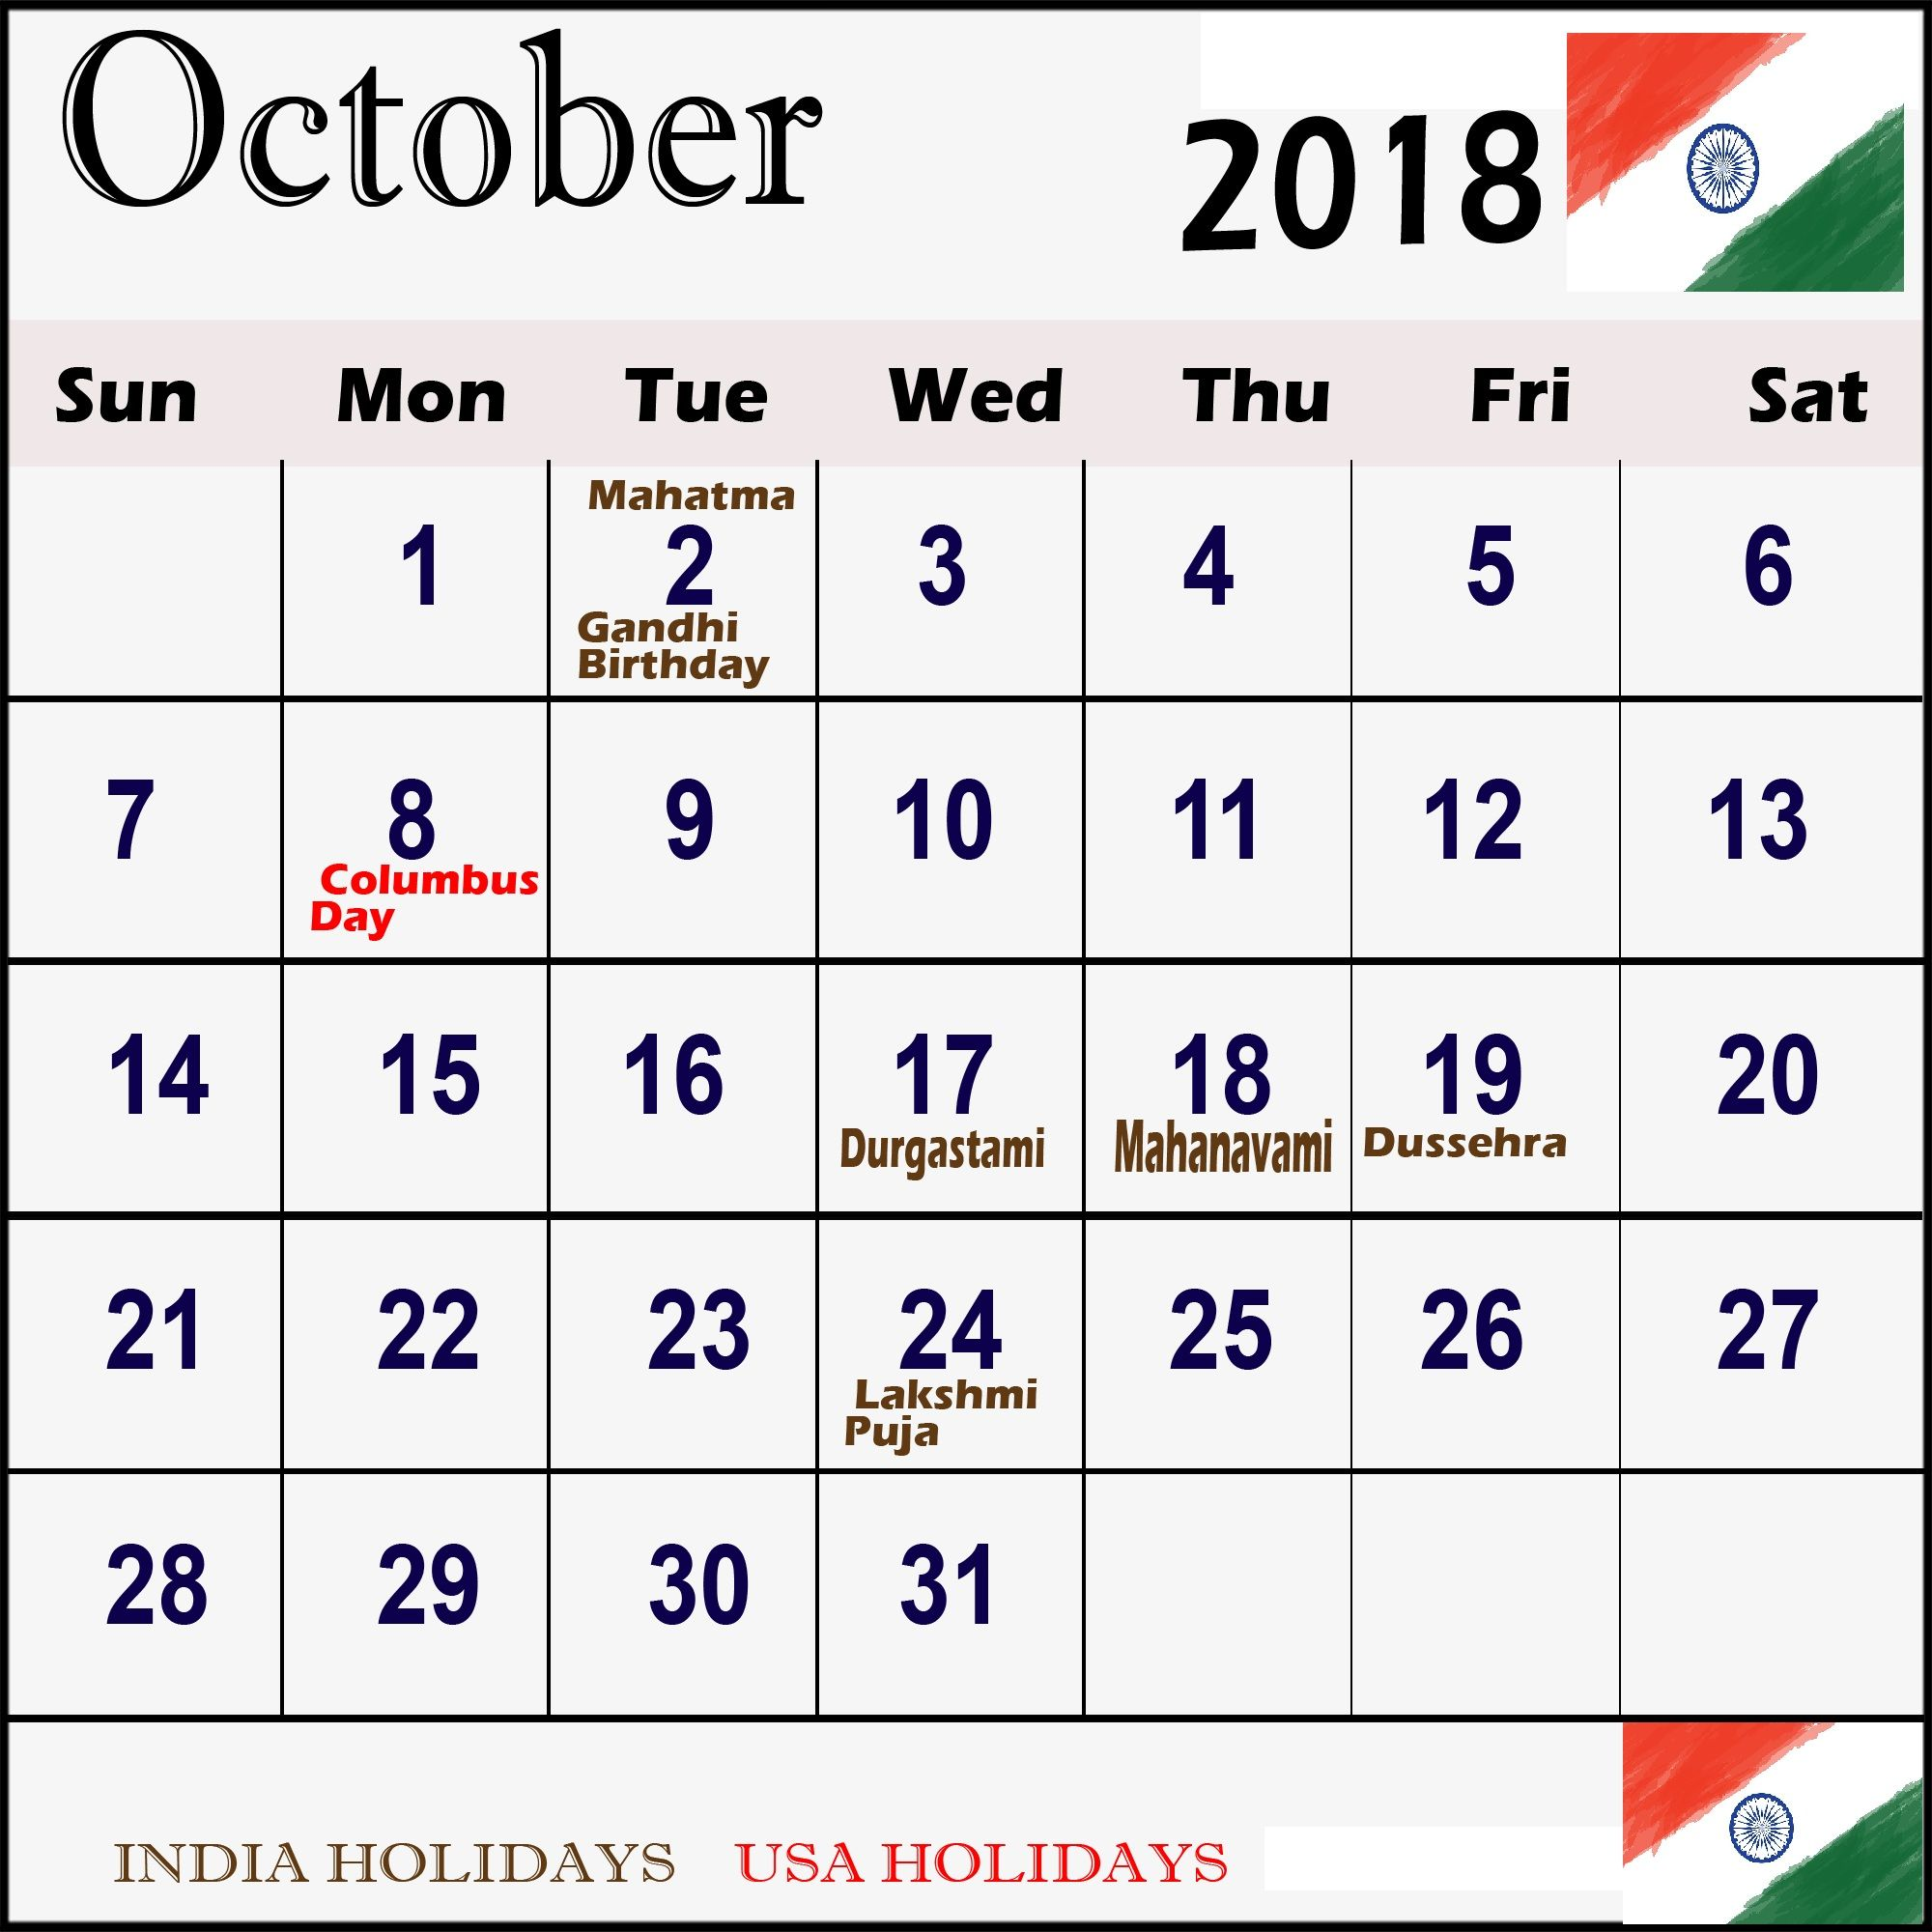 October 2018 Calendar India Indianholidays Octobercalendar